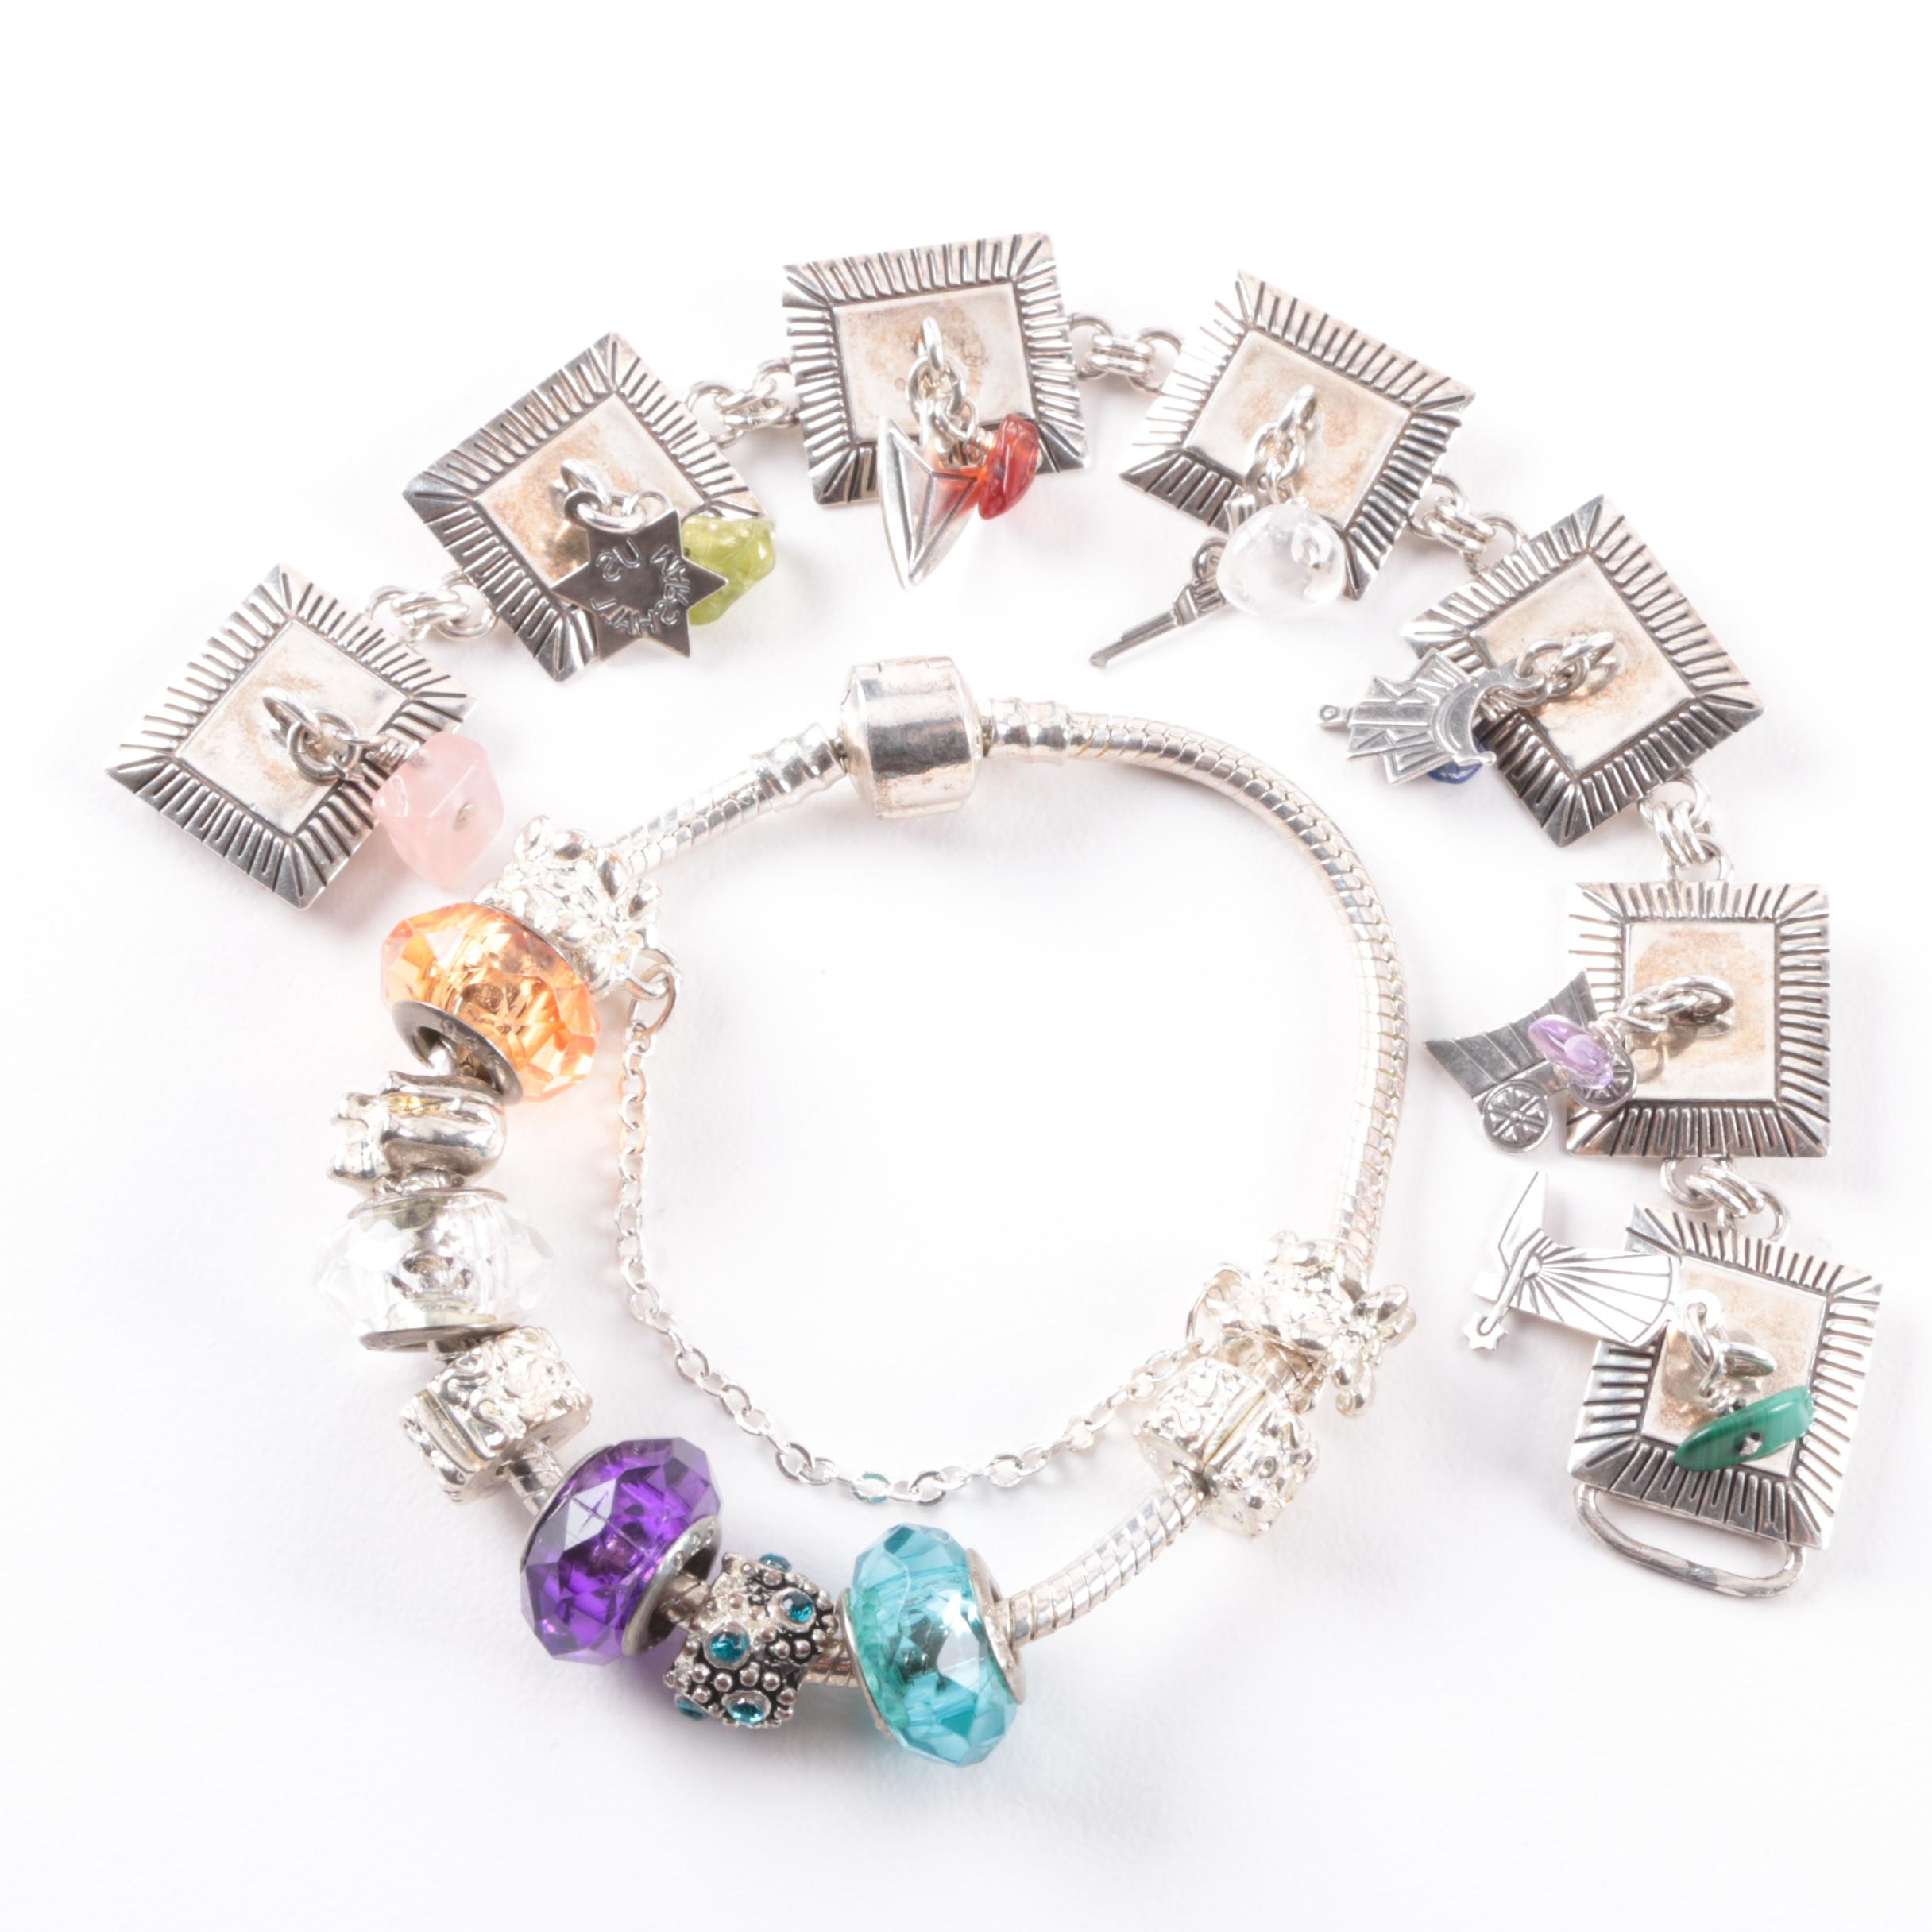 Sterling Silver Bracelets with Charms